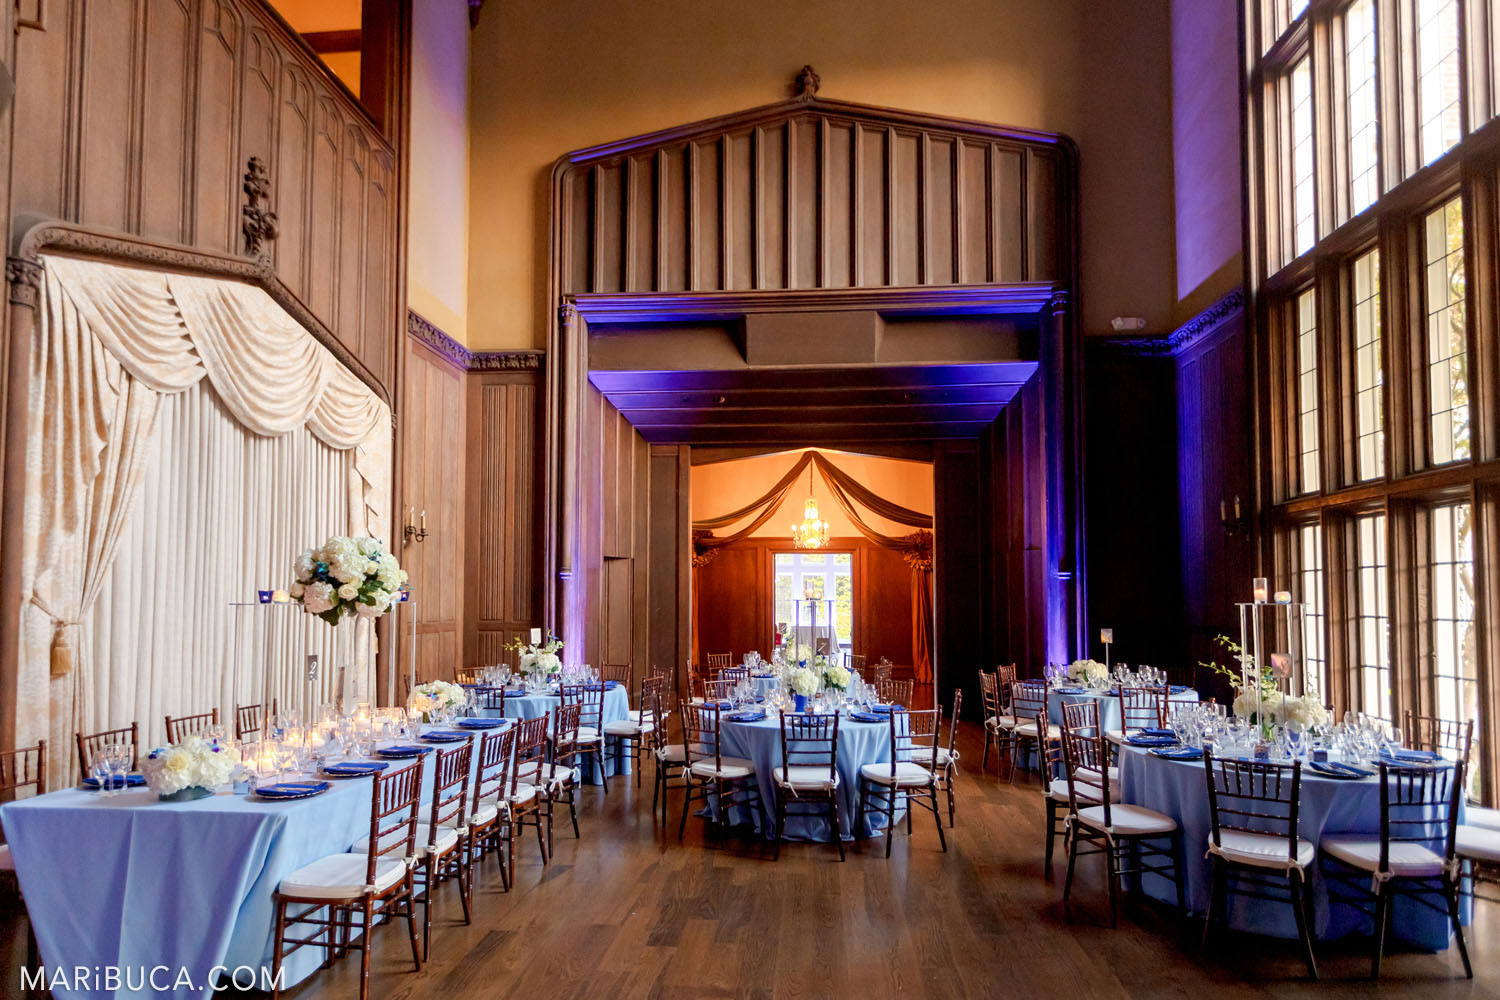 beautiful wooden room with a beige curtain and light blue tables decorated for a wedding in the Great Hall, Kohl Mansion, Burlingame background of purple and orange tones of the wedding theme